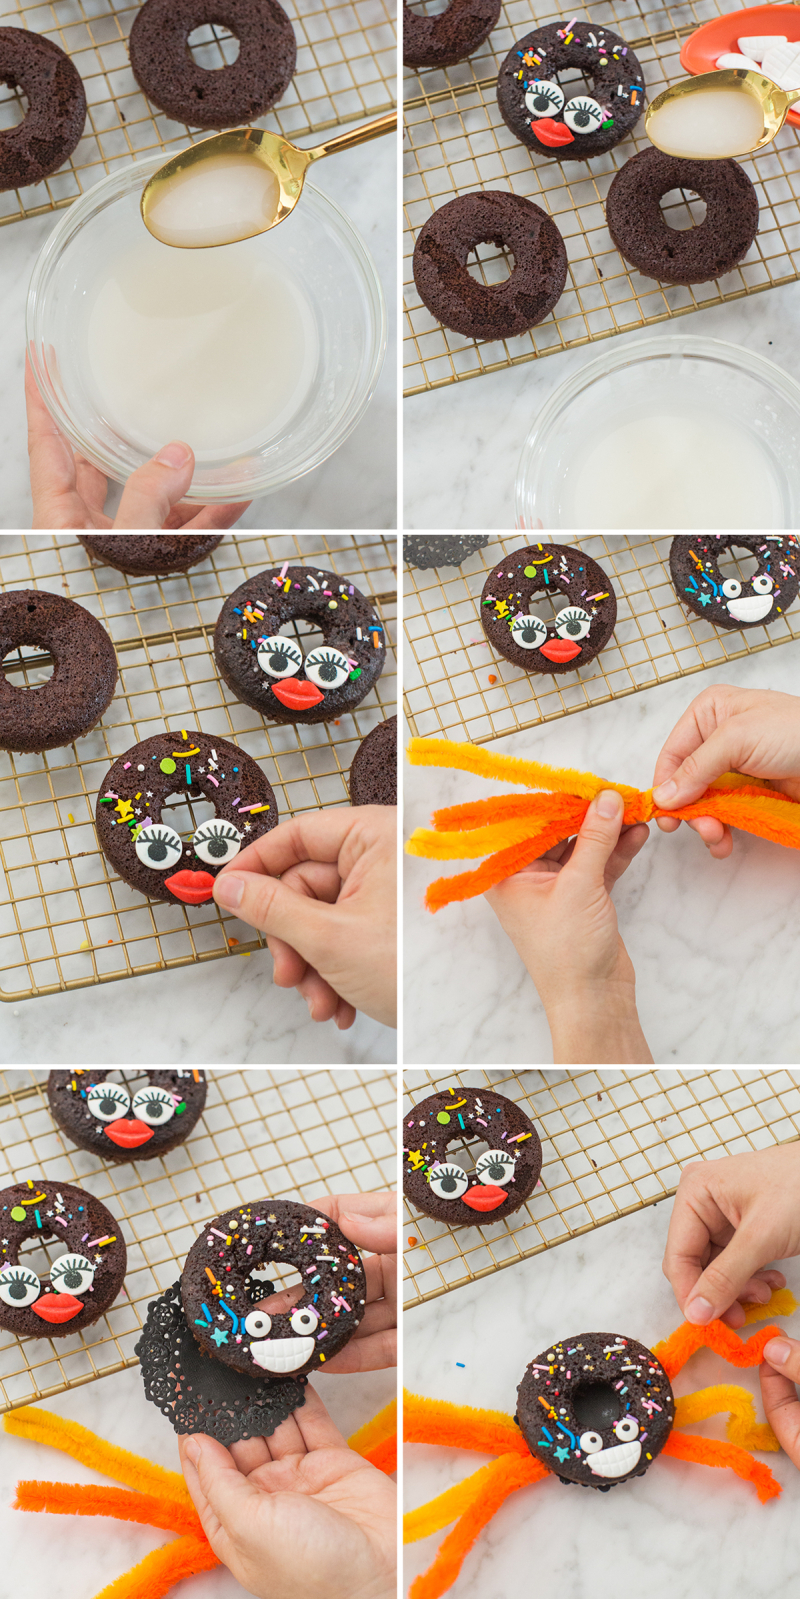 2018_10_02_Spider-Donuts-DIY-10-blog